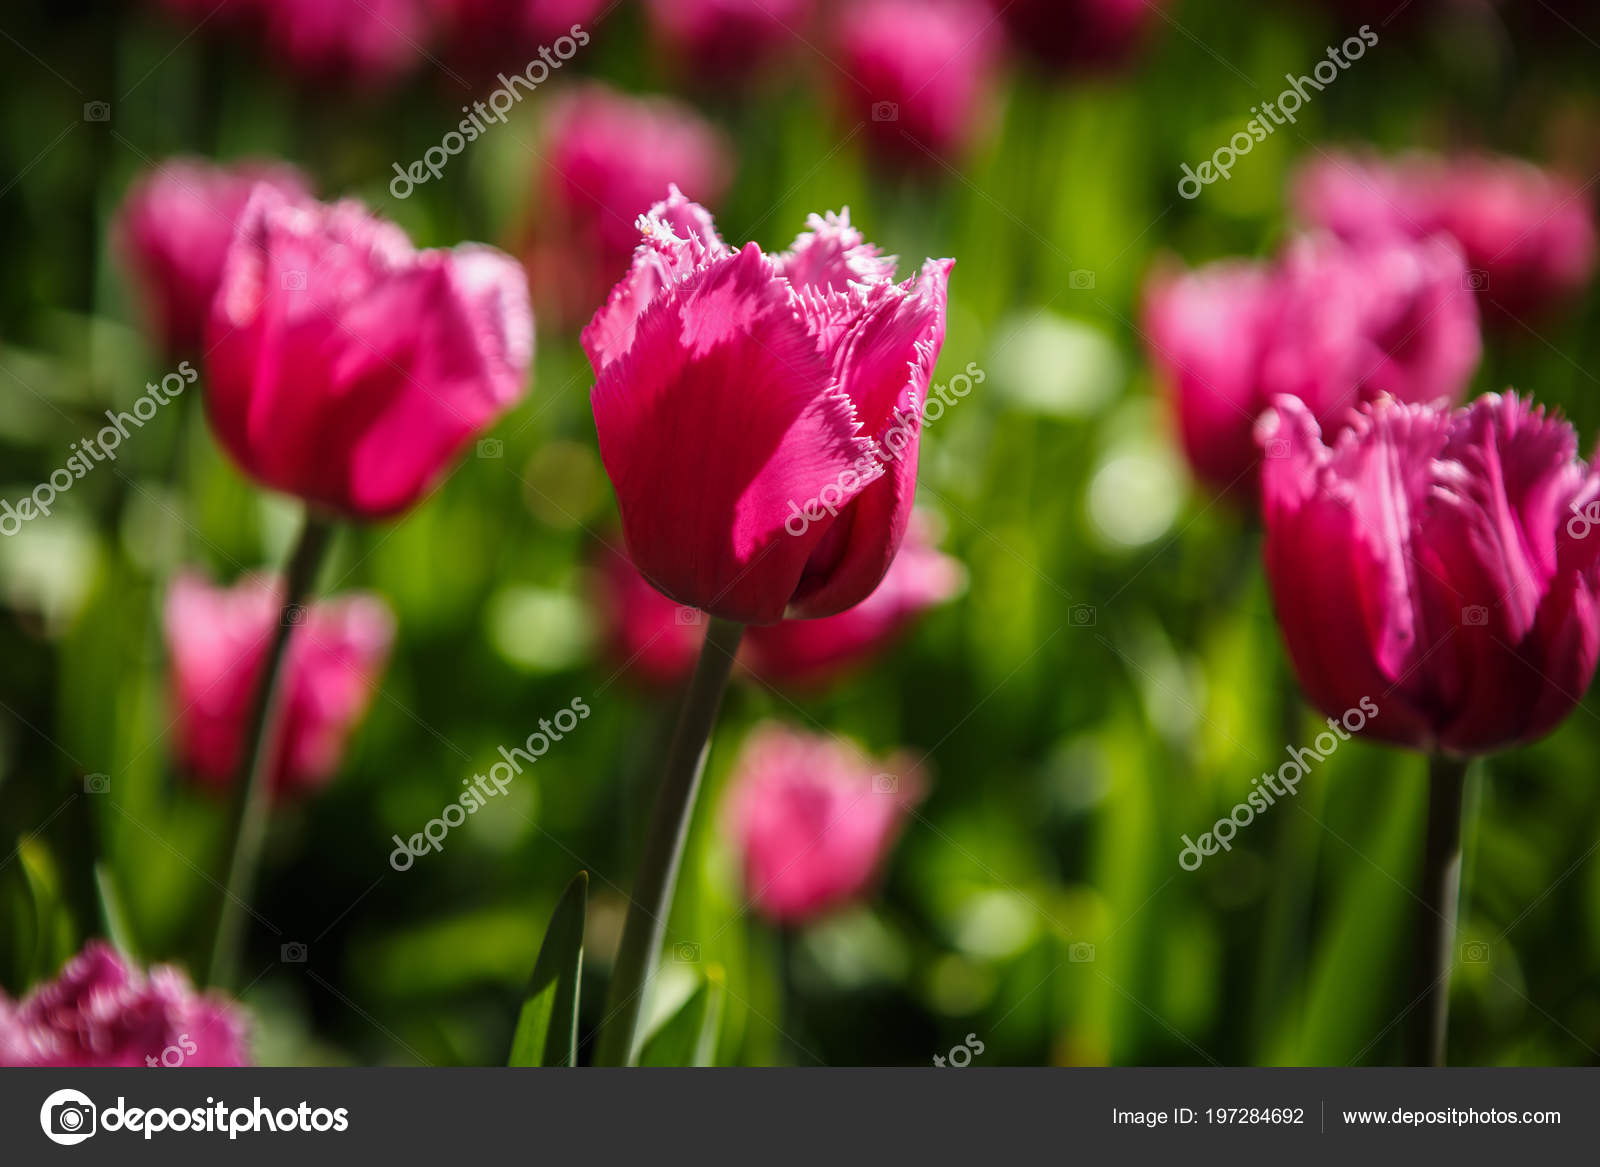 Beautiful colorful pink tulips flowers bloom spring garden beautiful colorful pink tulips flowers bloom in spring gardencorative wallpaper with red tulipa flower blossom in springtimeauty of nature poster izmirmasajfo